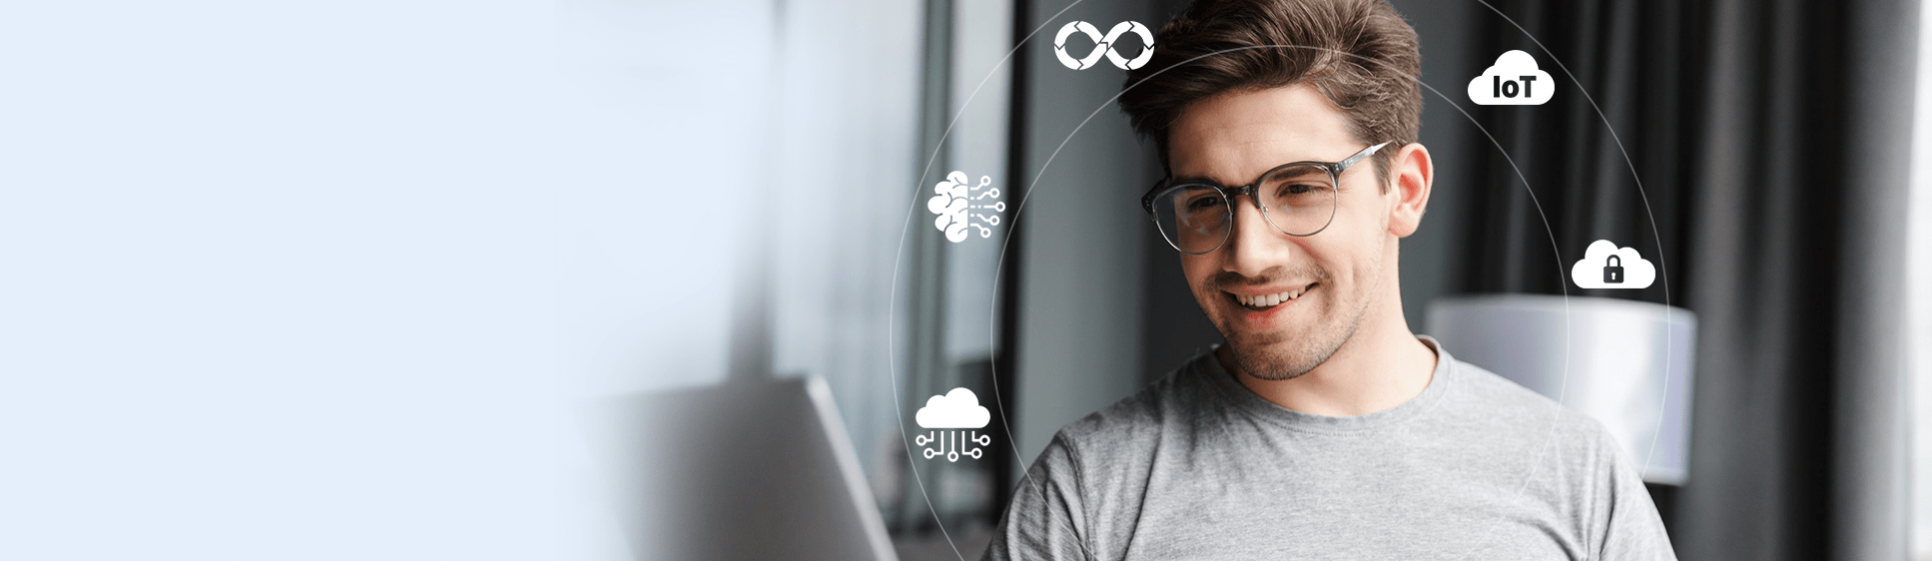 Enabling Individuals to Progress Using the Power of Cloud, AI/ML, DevOps, IoT, and Security